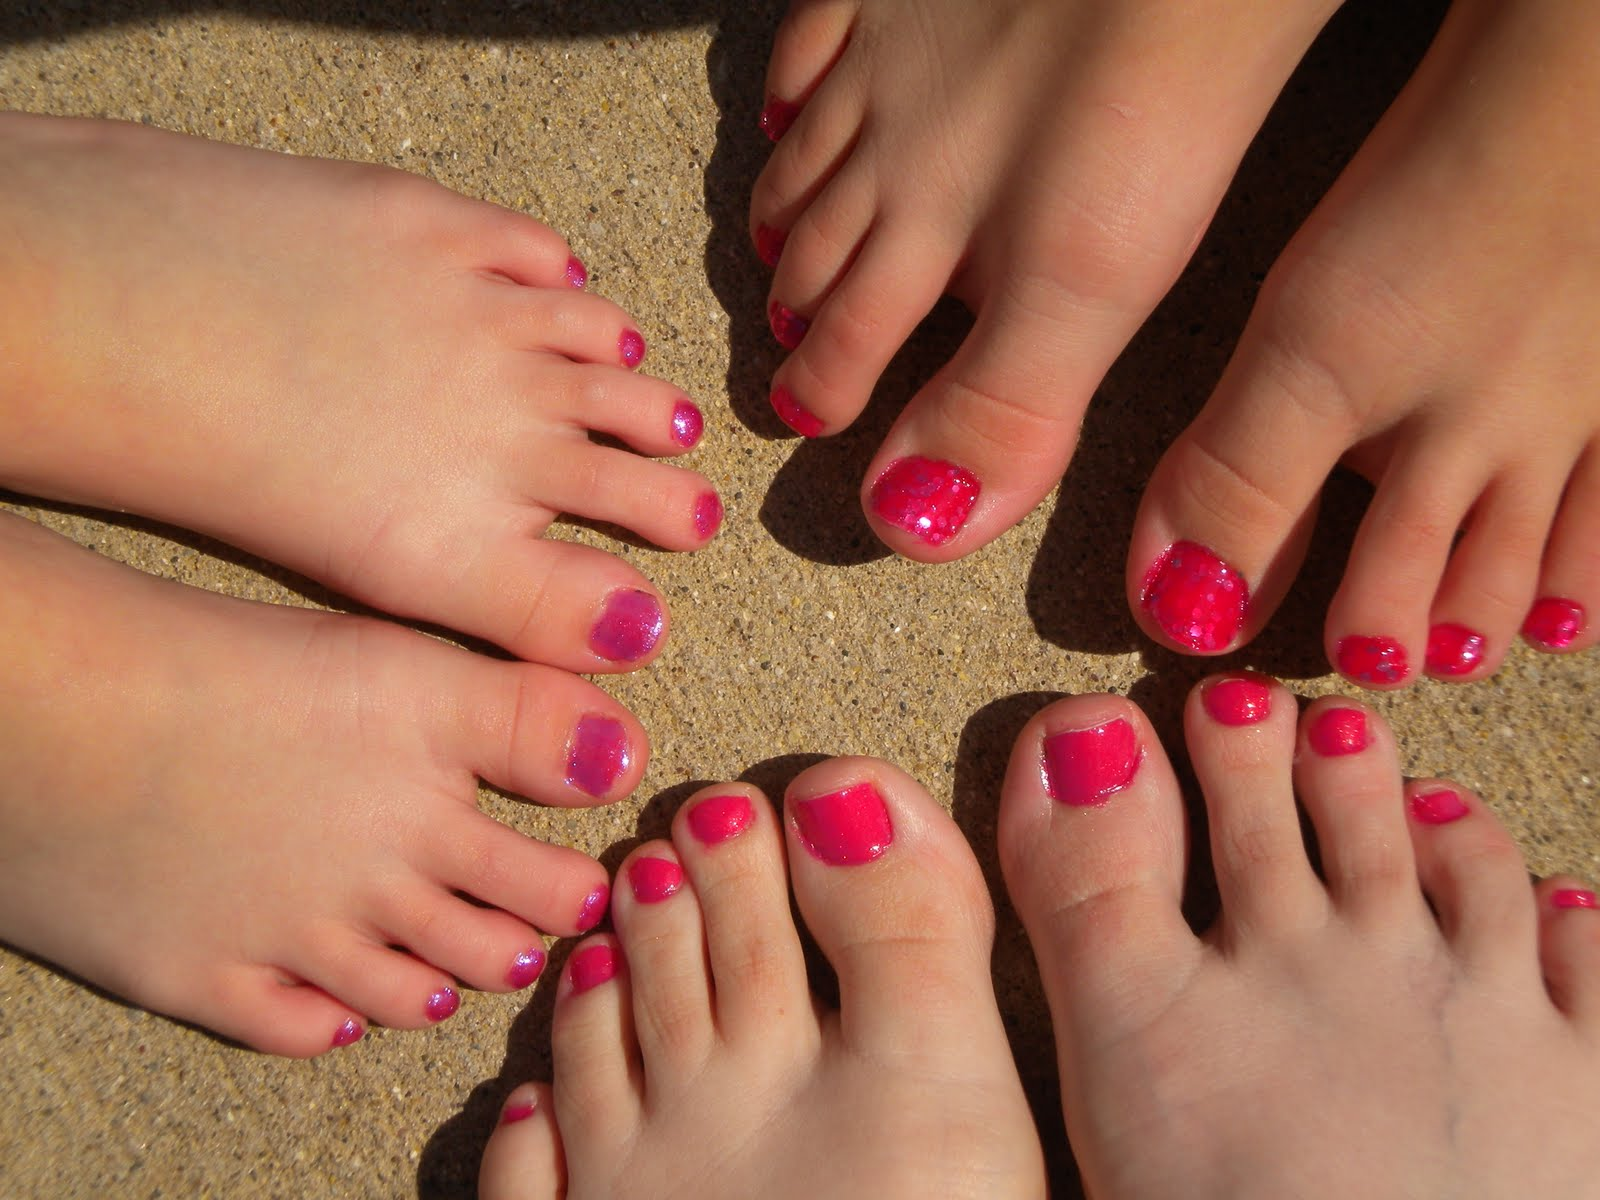 maybe you're the crazy one!: a family of pink toes, to kick breast